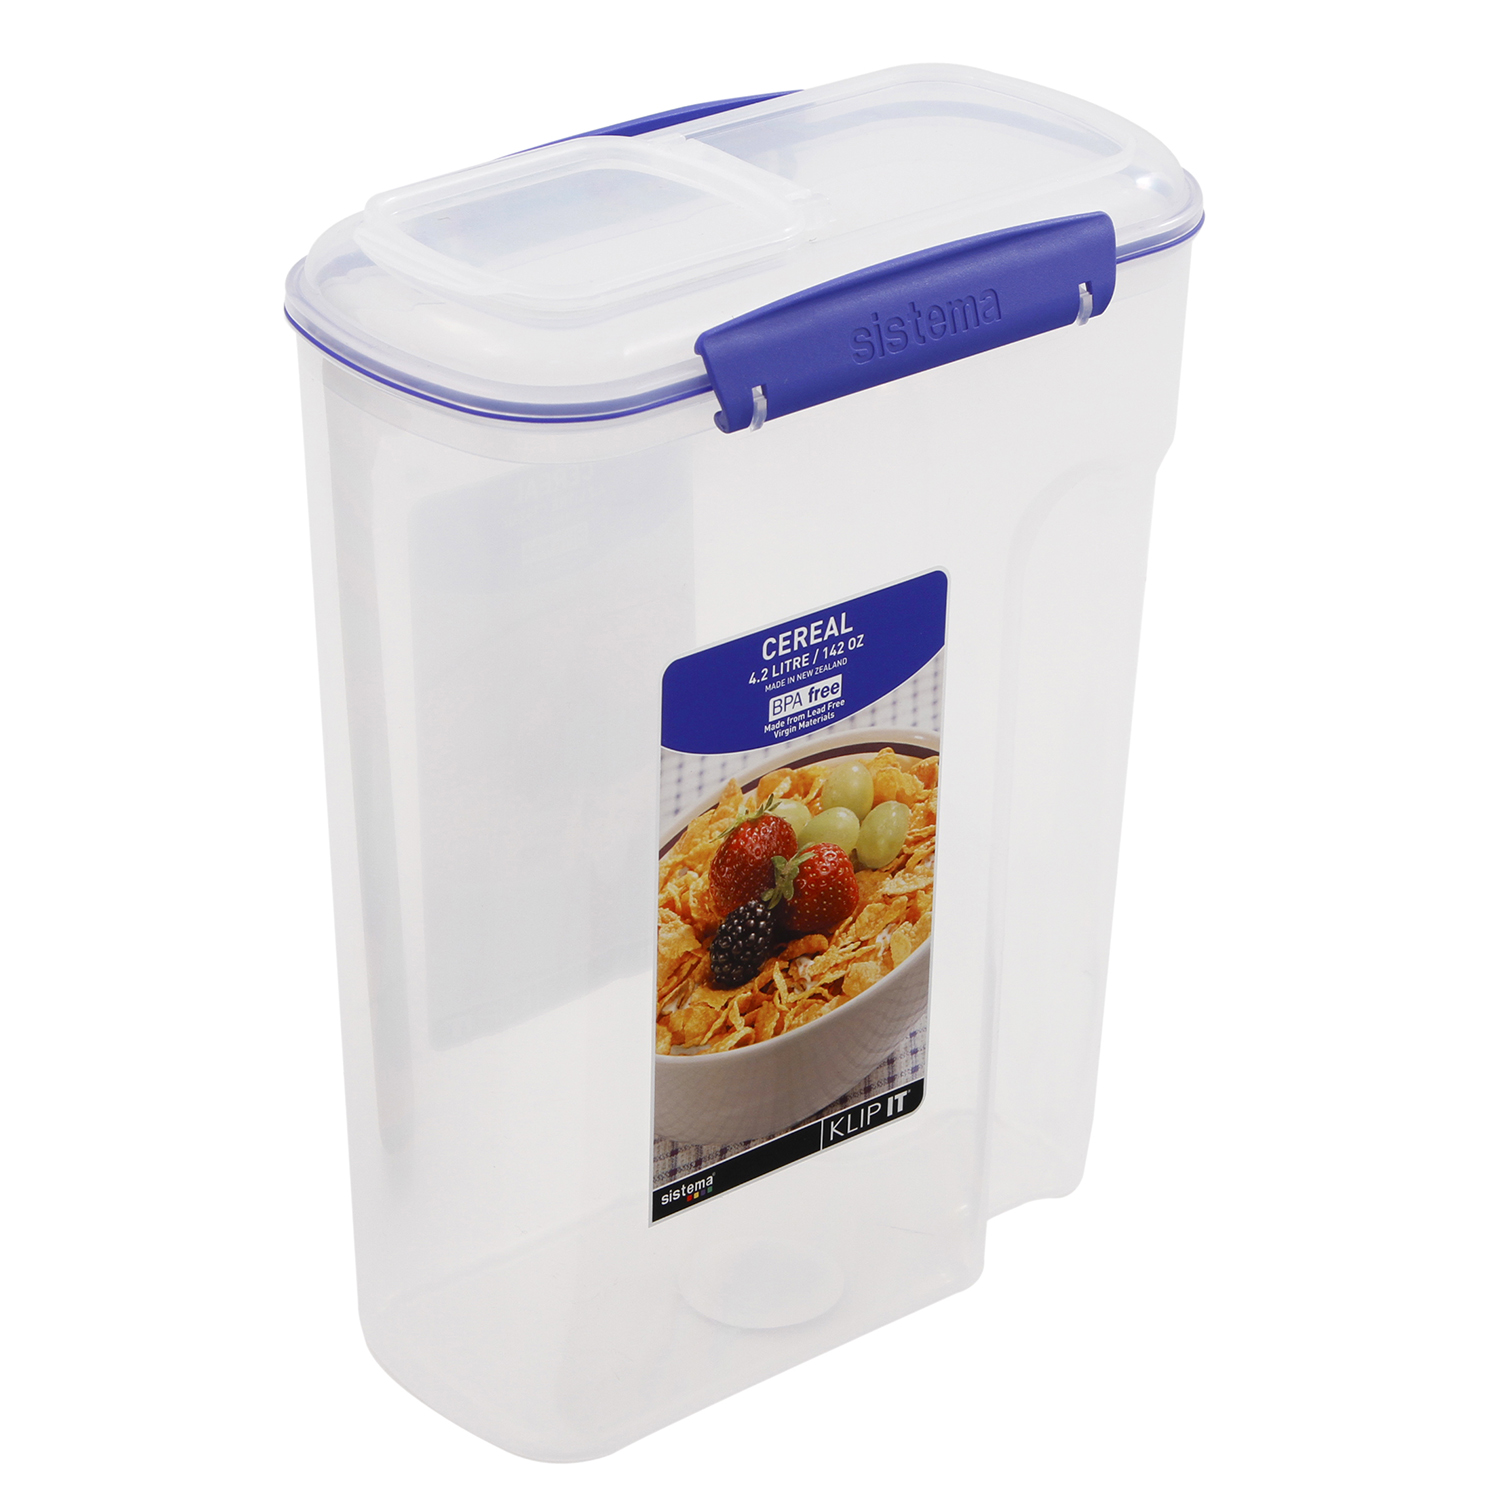 Klip it airtight cereal dispenser large home store more images klip it airtight cereal dispenser large ccuart Image collections